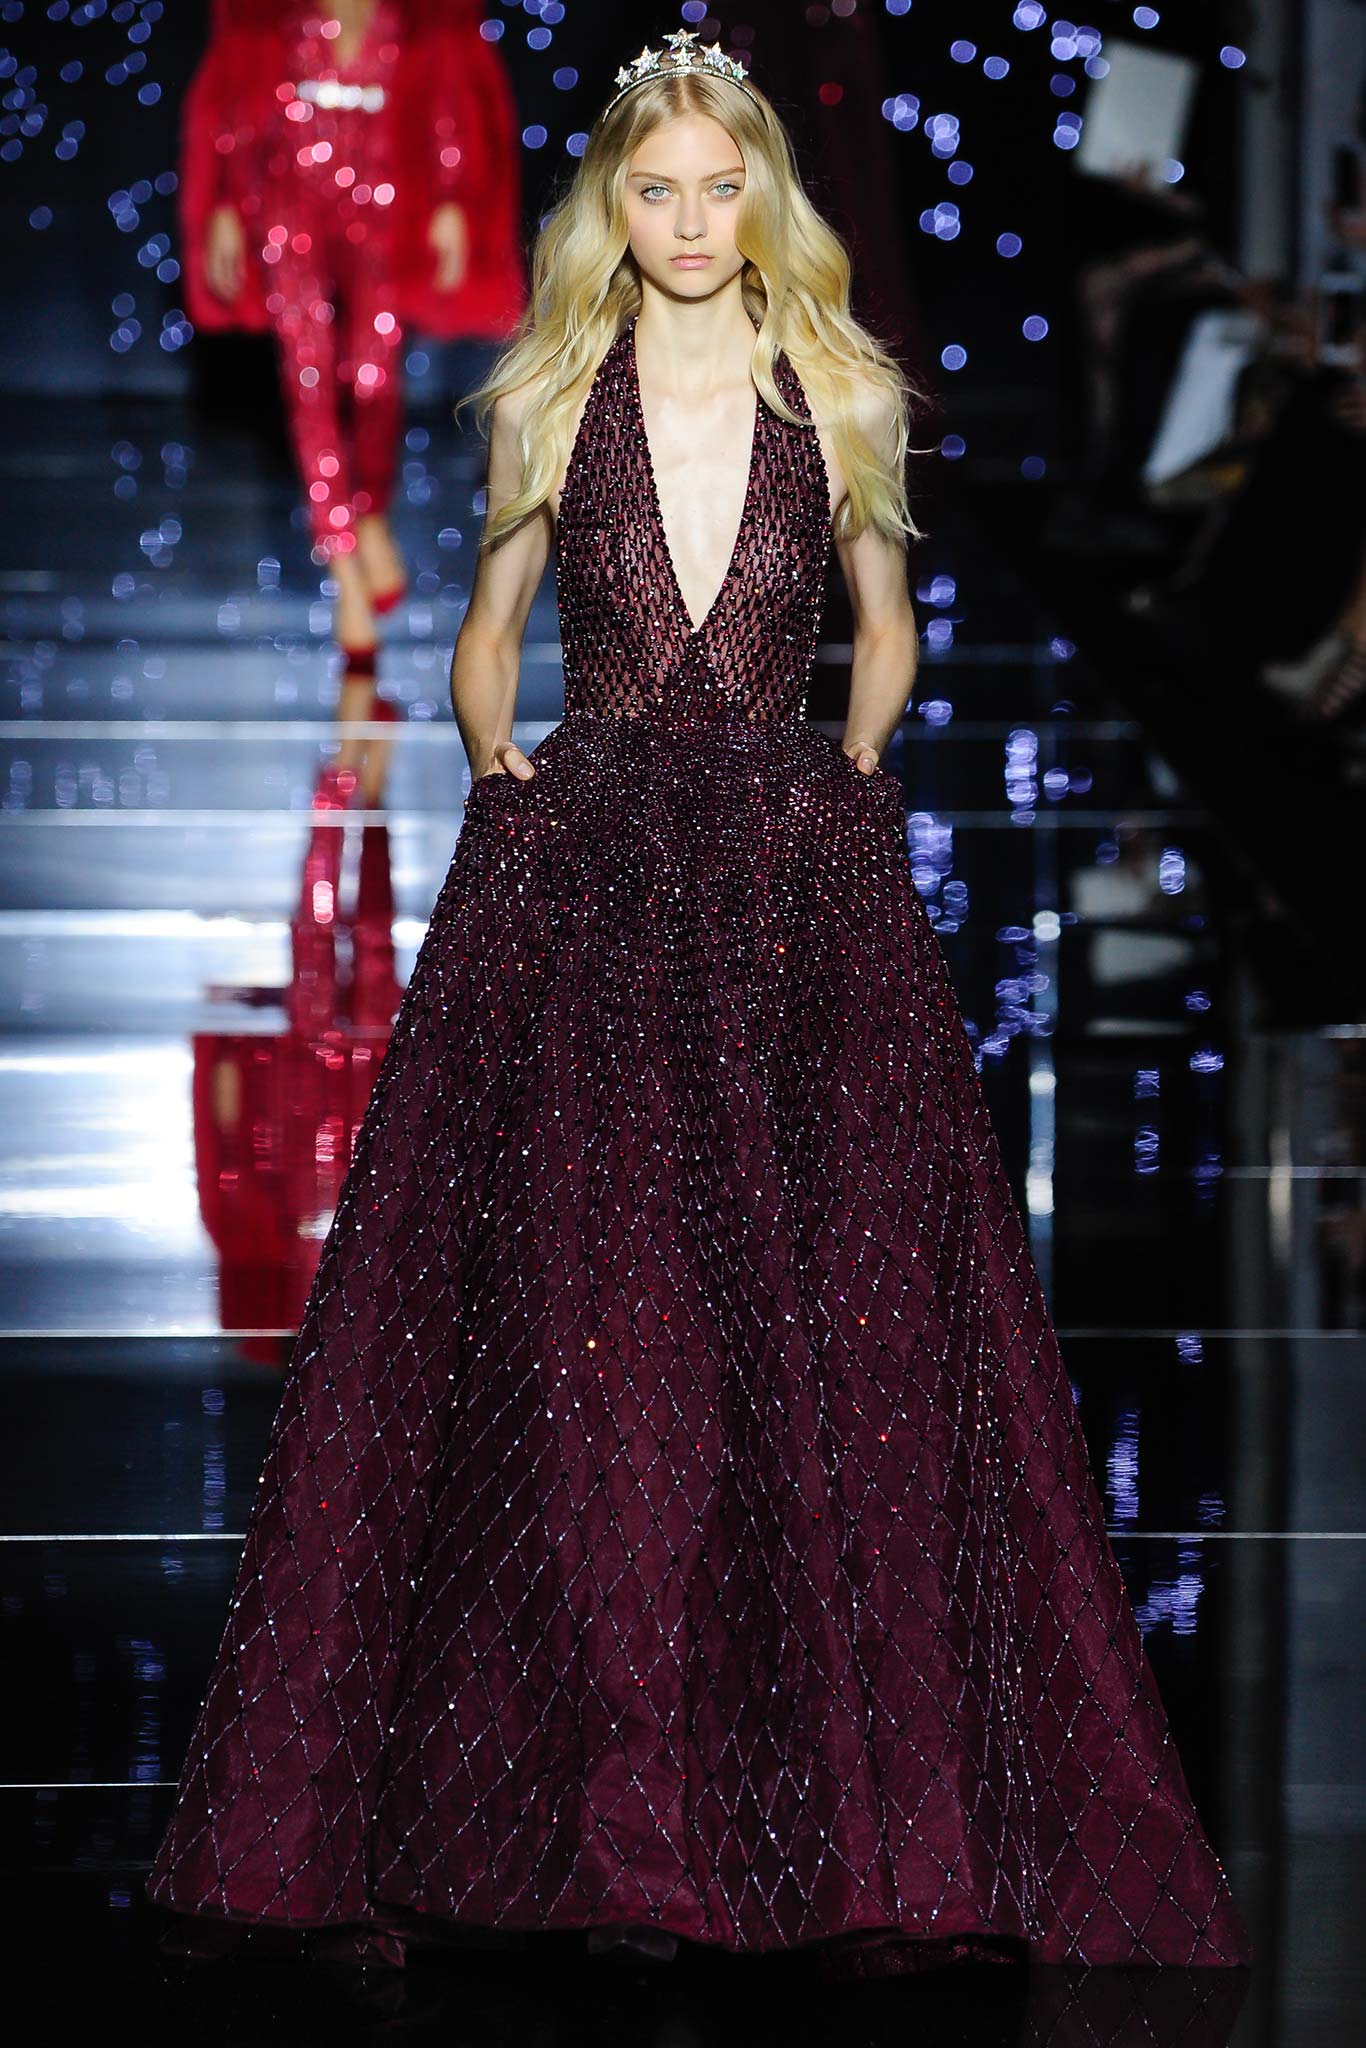 2015 Fall Winter 2016 Fashion Trends For Teens: RUNWAY: Zuhair Murad Fall 2015 Couture Collection